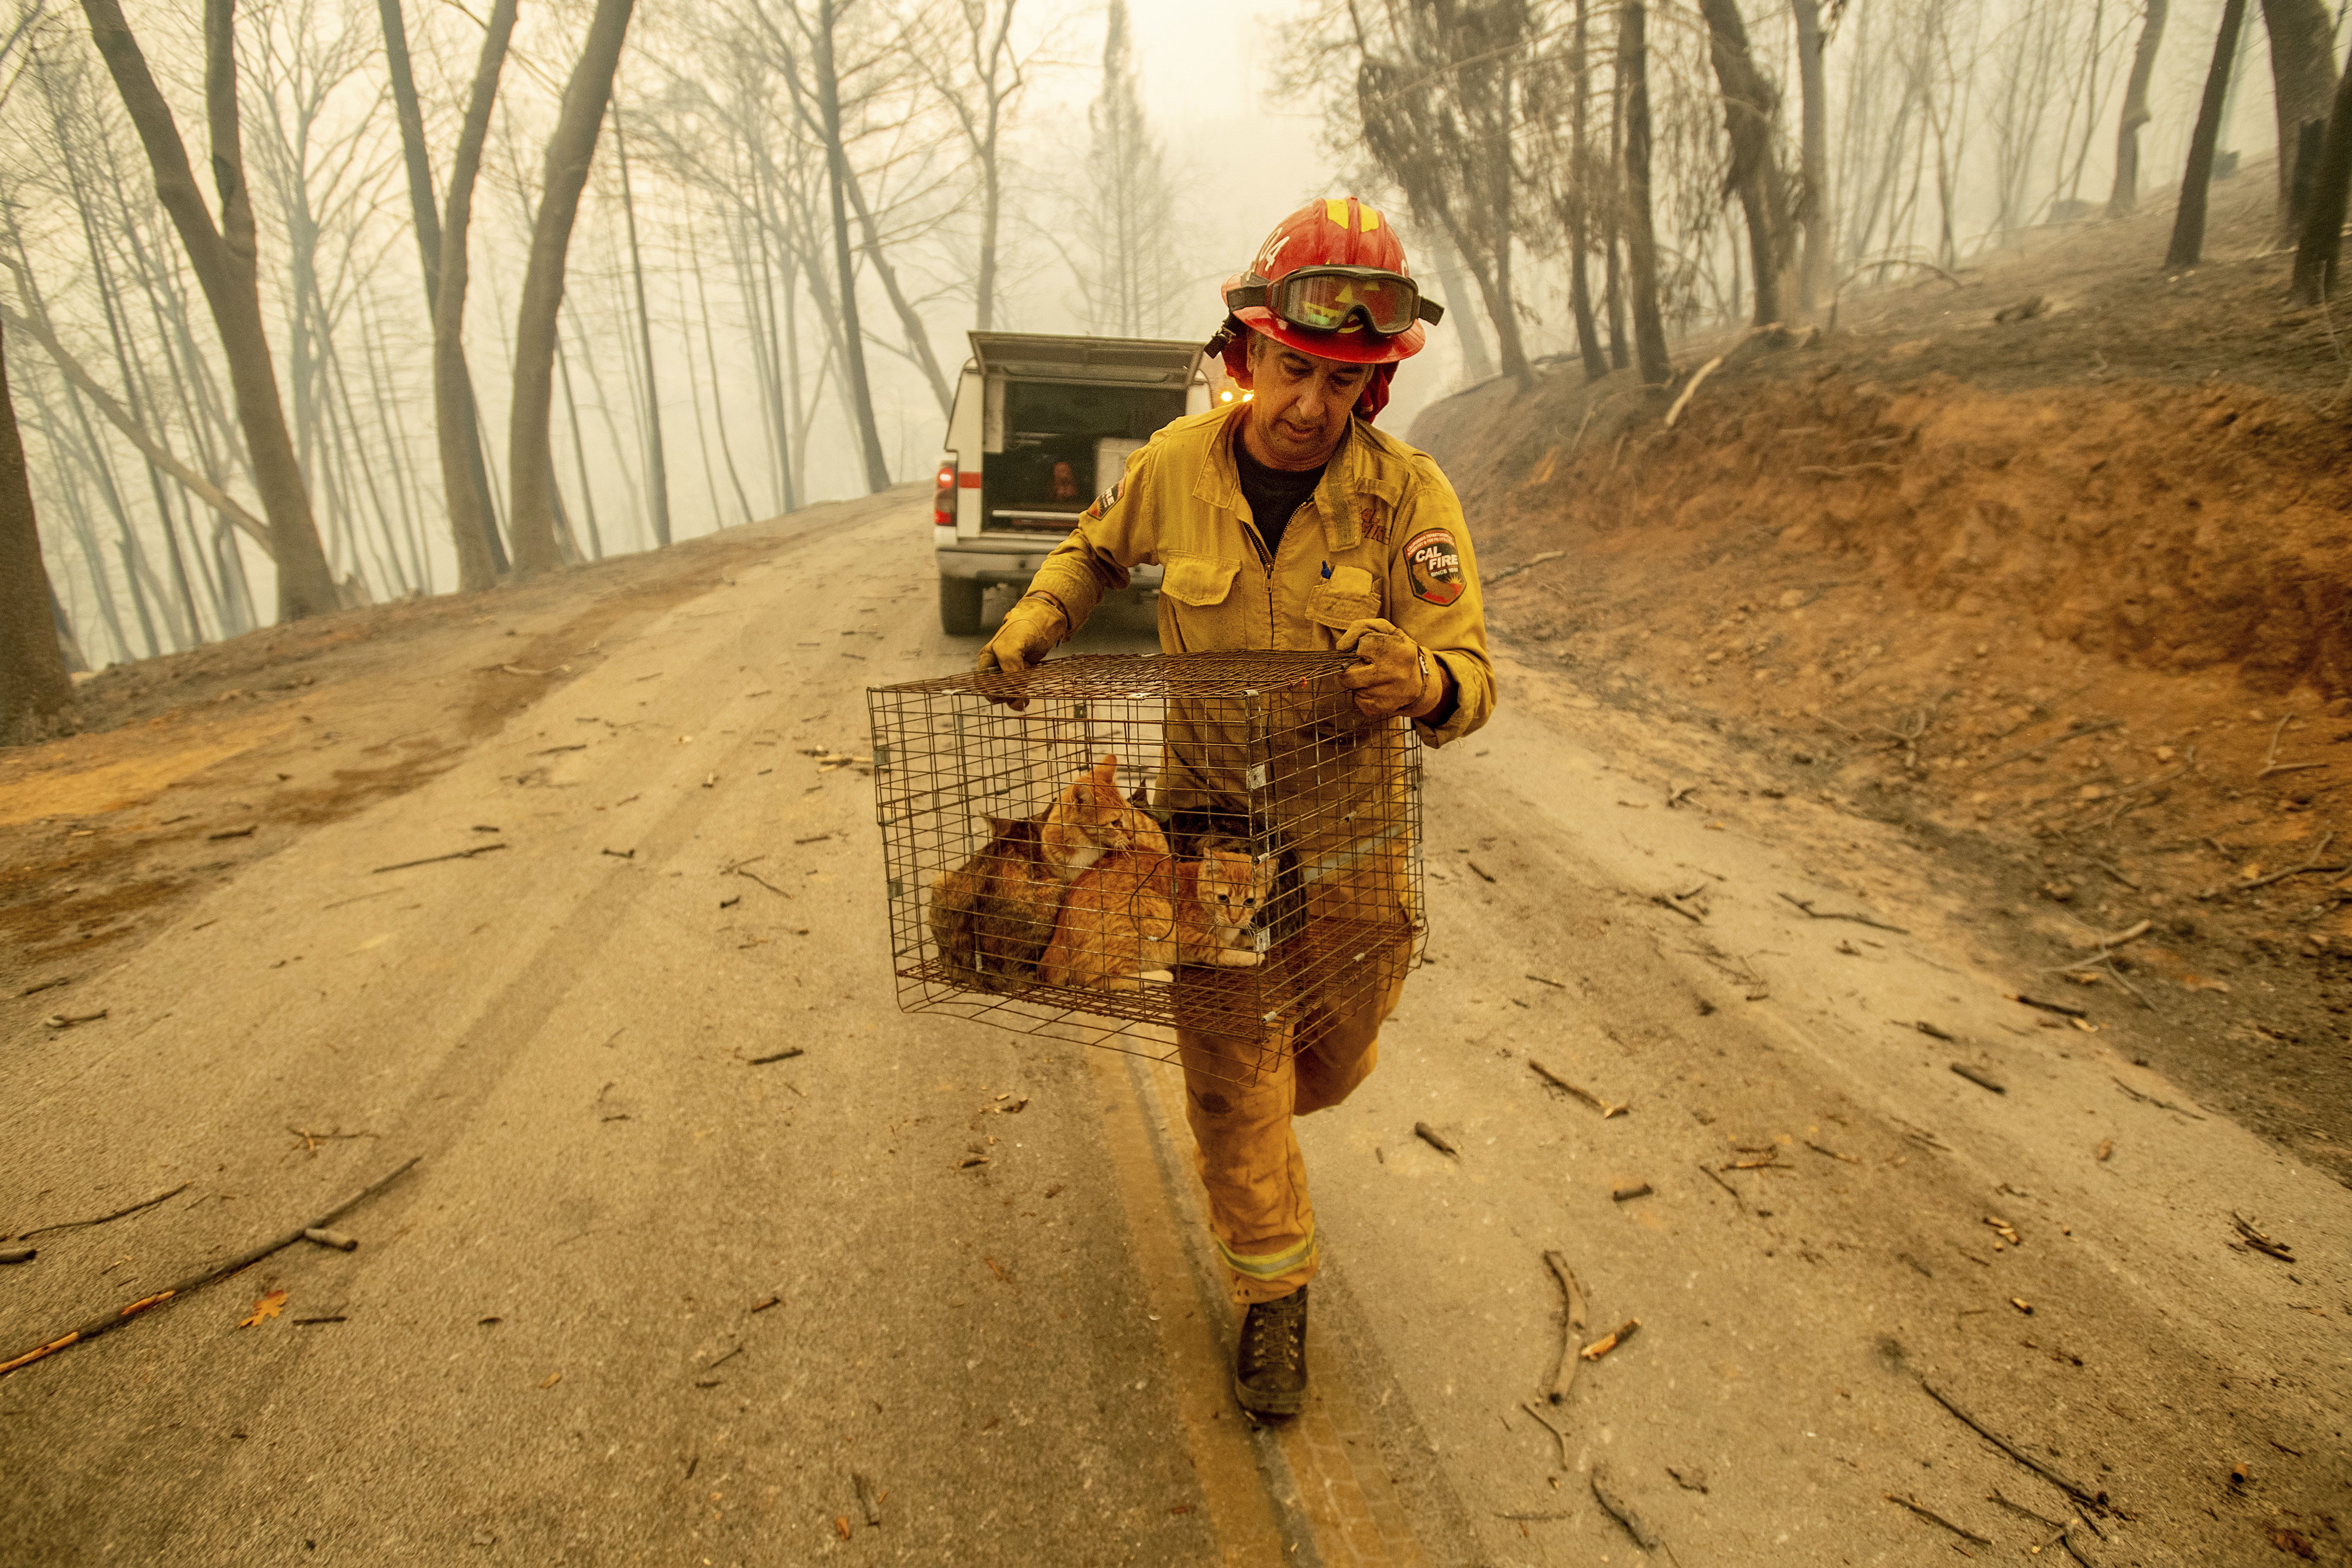 Capt. Steve Millosovich carries a cage of cats while battling the Camp Fire in Big Bend. Credit: PA